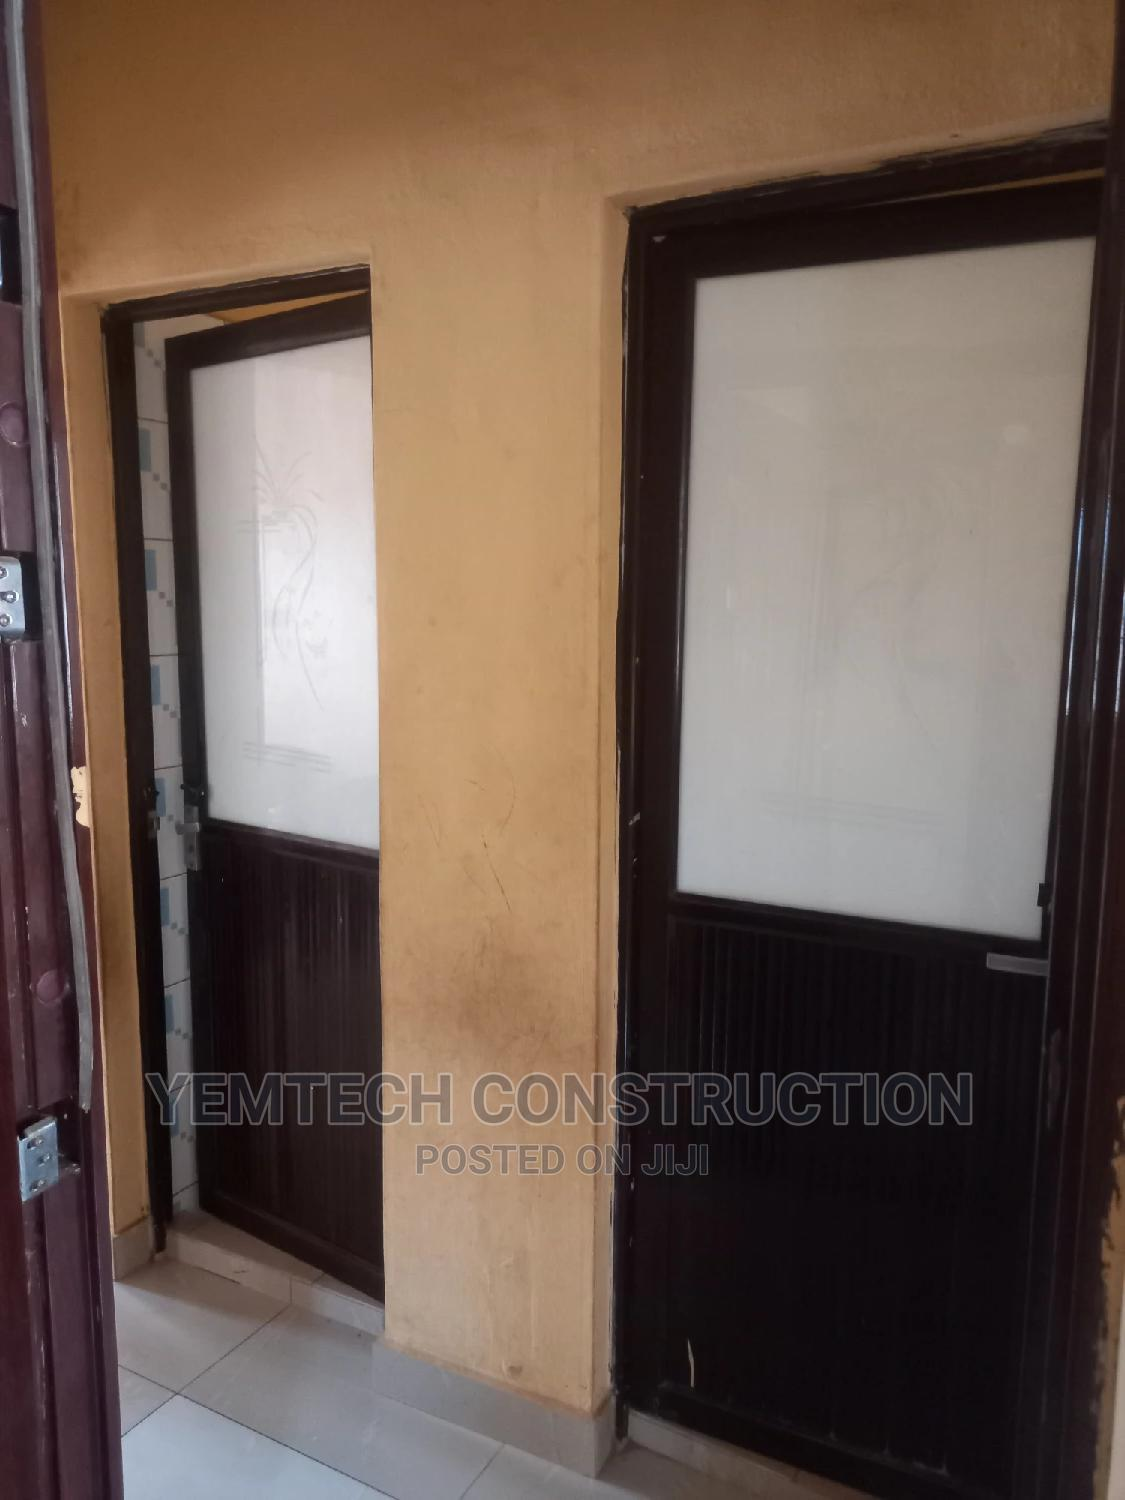 2 Bedrooms Bungalow for Sale in Love Estate, Ikeja | Houses & Apartments For Sale for sale in Ikeja, Lagos State, Nigeria